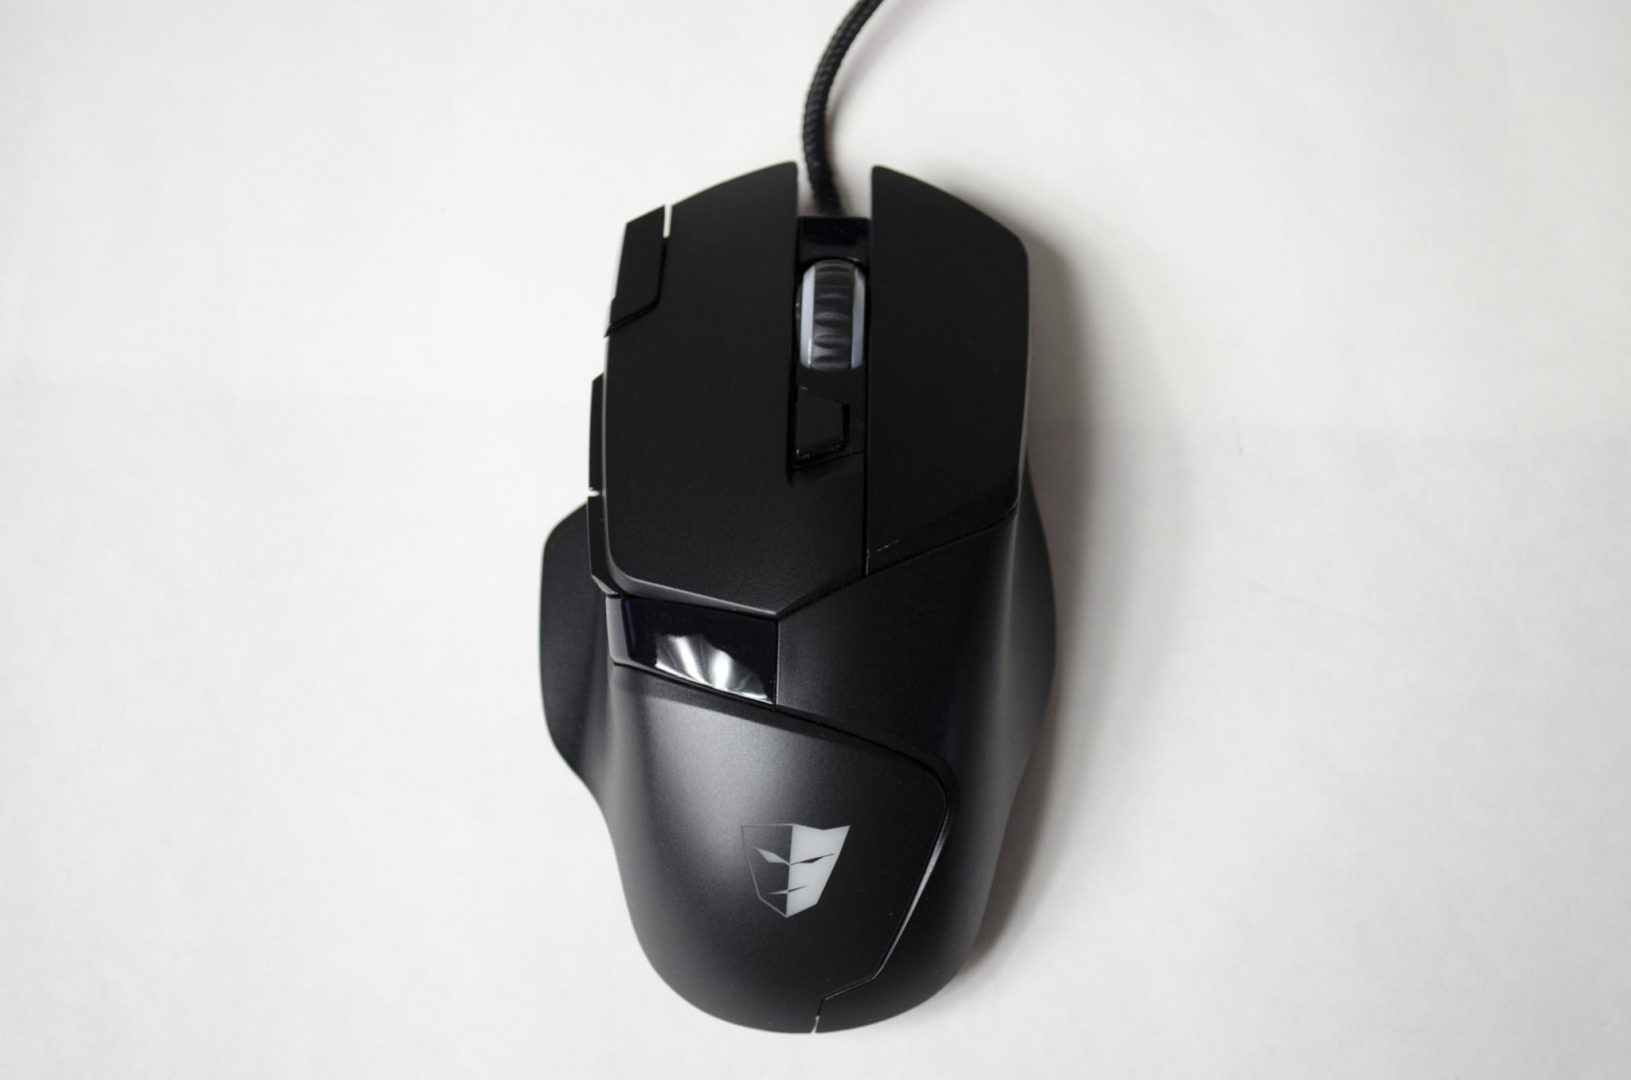 tesoro ascalon spectrum rgb gaming mouse_9